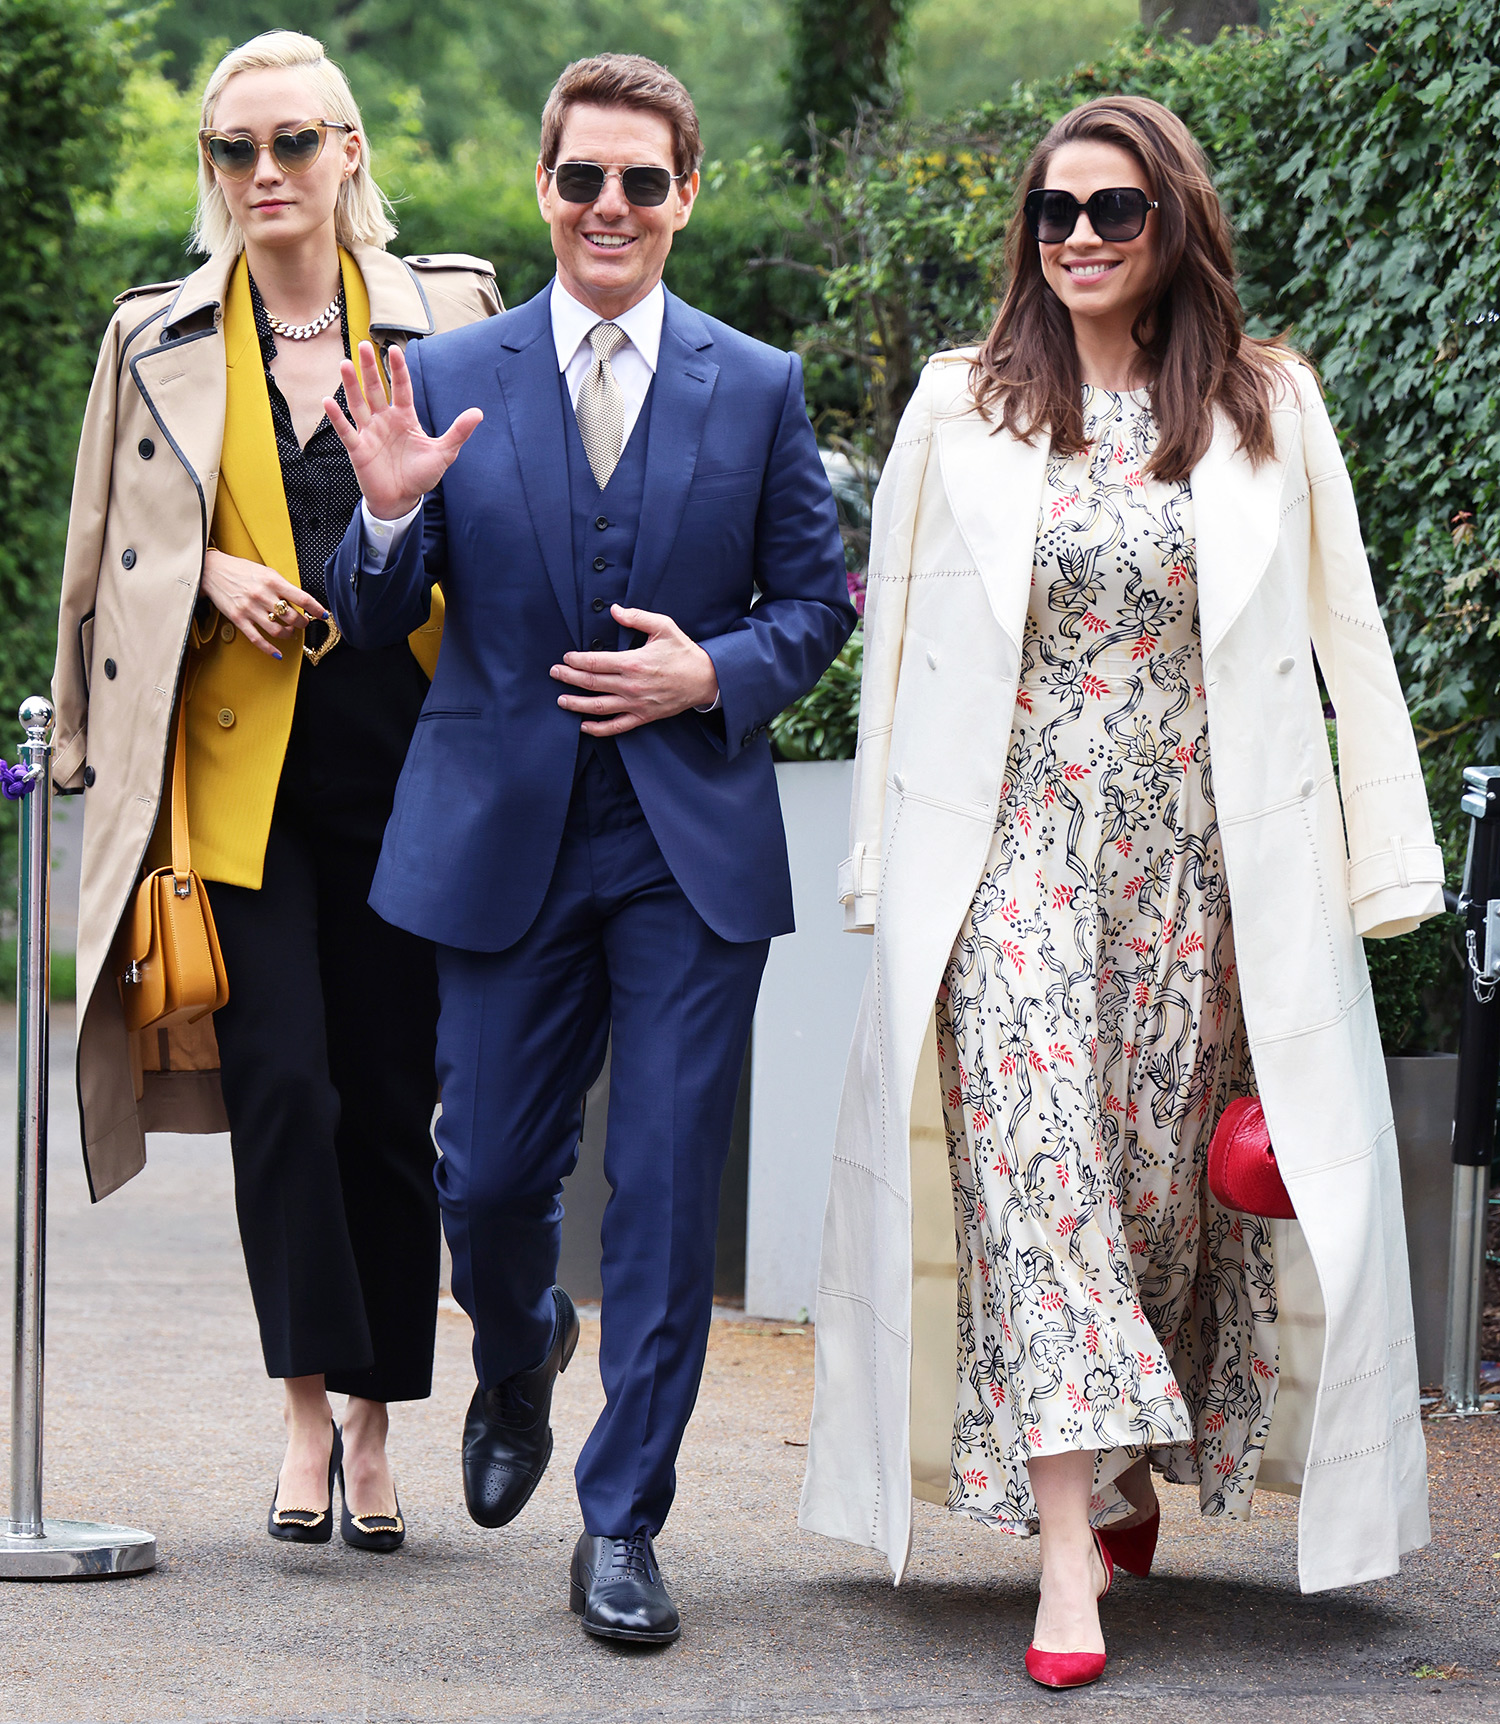 Tom Cruise, Pom Klementieff and Hayley Atwell attend Wimbledon Championships Tennis Tournament Ladies Final Day at All England Lawn Tennis and Croquet Club on July 10, 2021 in London, England.